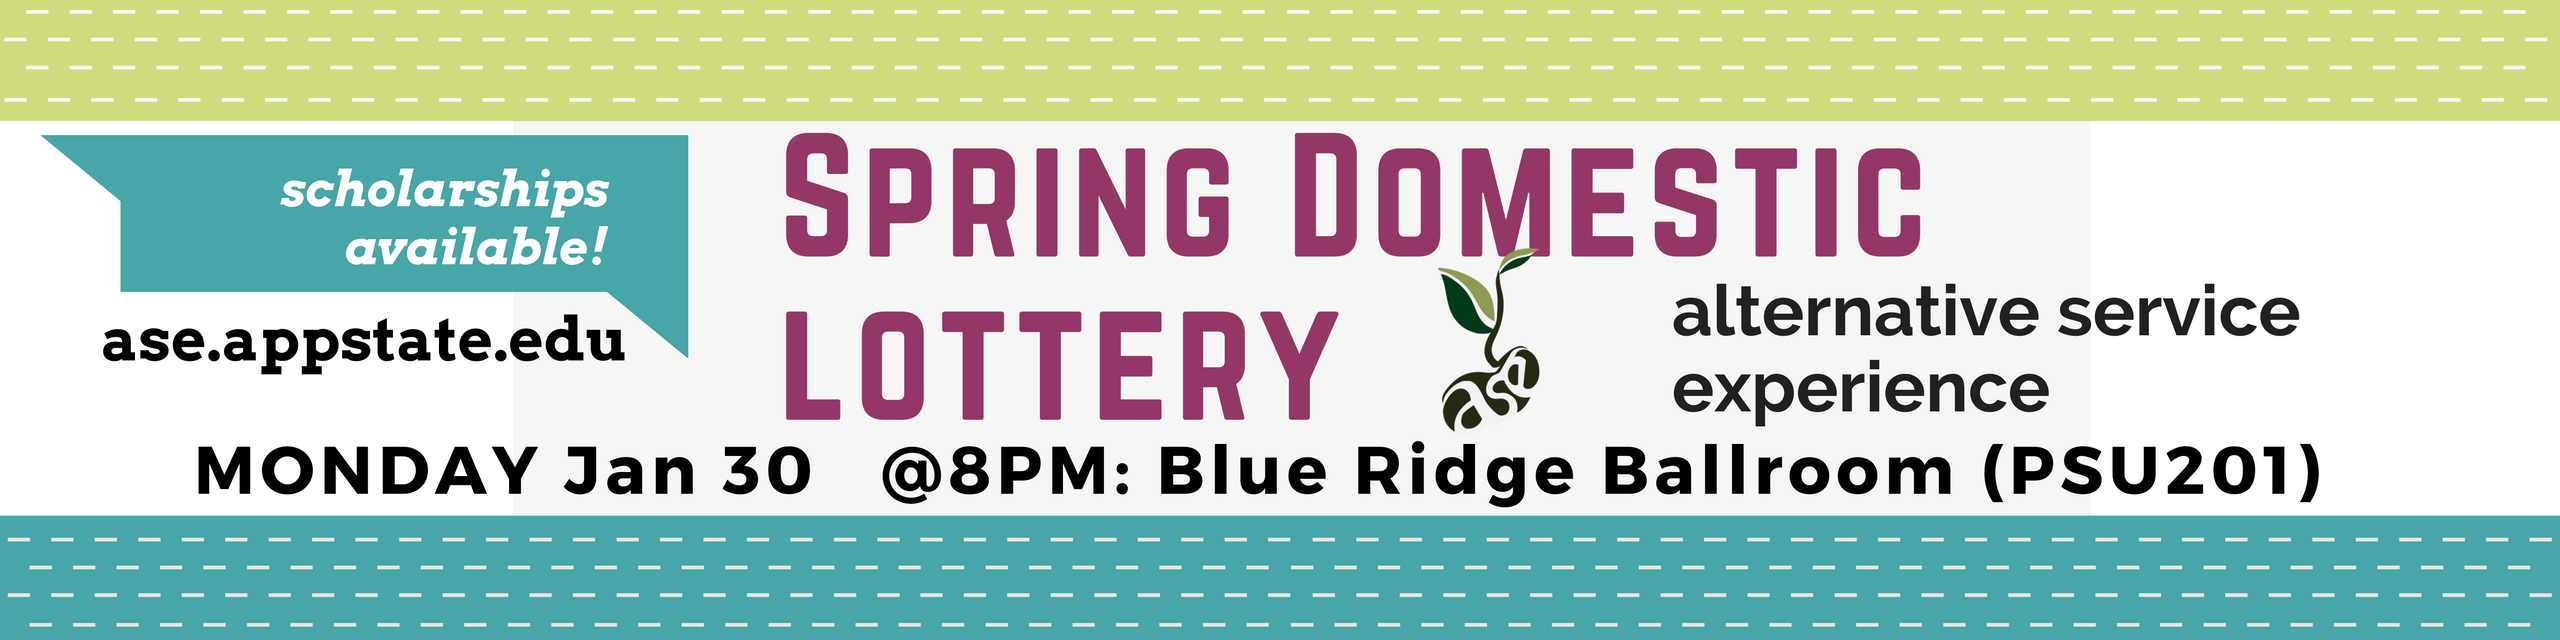 Website Banner Domestic Lottery